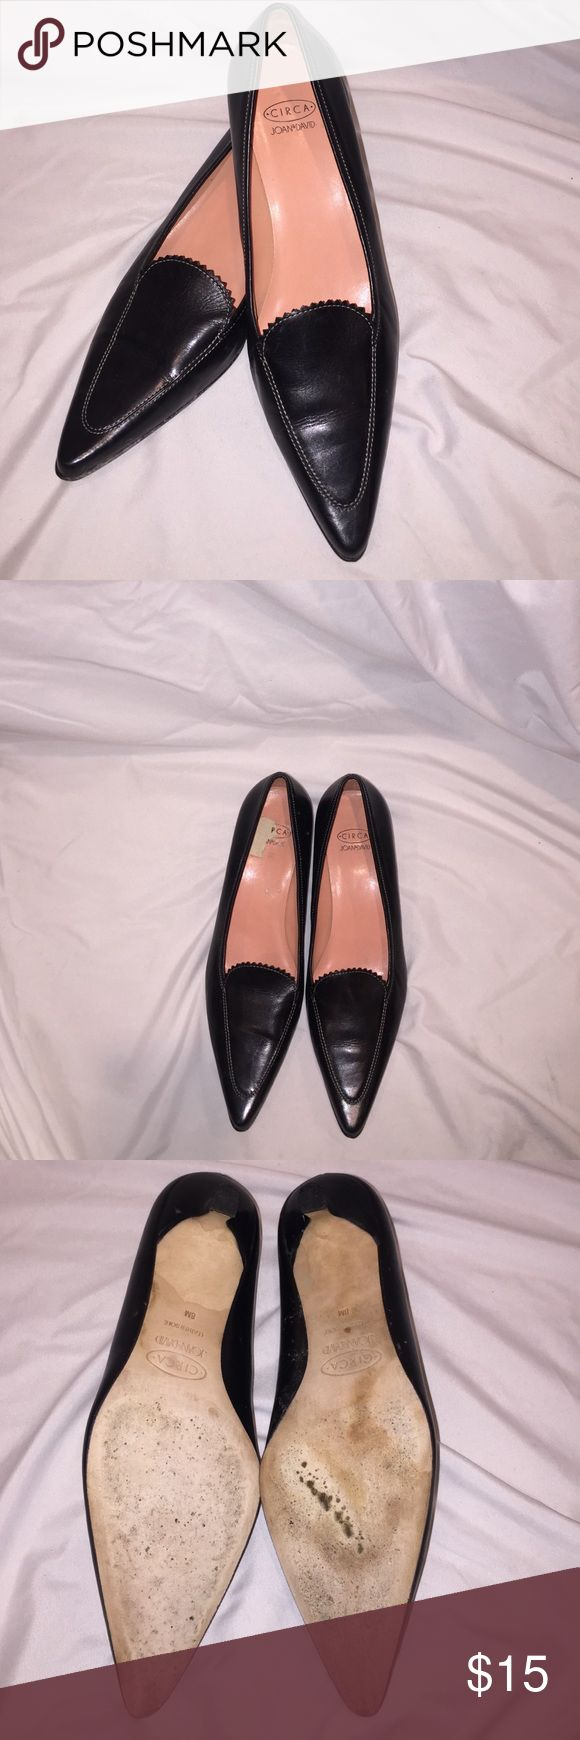 """Joan and David Black Leather Heels Joan and David Black Leather Heels. Sophisticated and classic with Joan and David quality. Zoom in on the zig zag cut on top of the foot.   This is a great dress pants shoe. It has the hard to find 1.5"""" heel. Leather upper and leather soles. Joan & David Shoes Heels"""